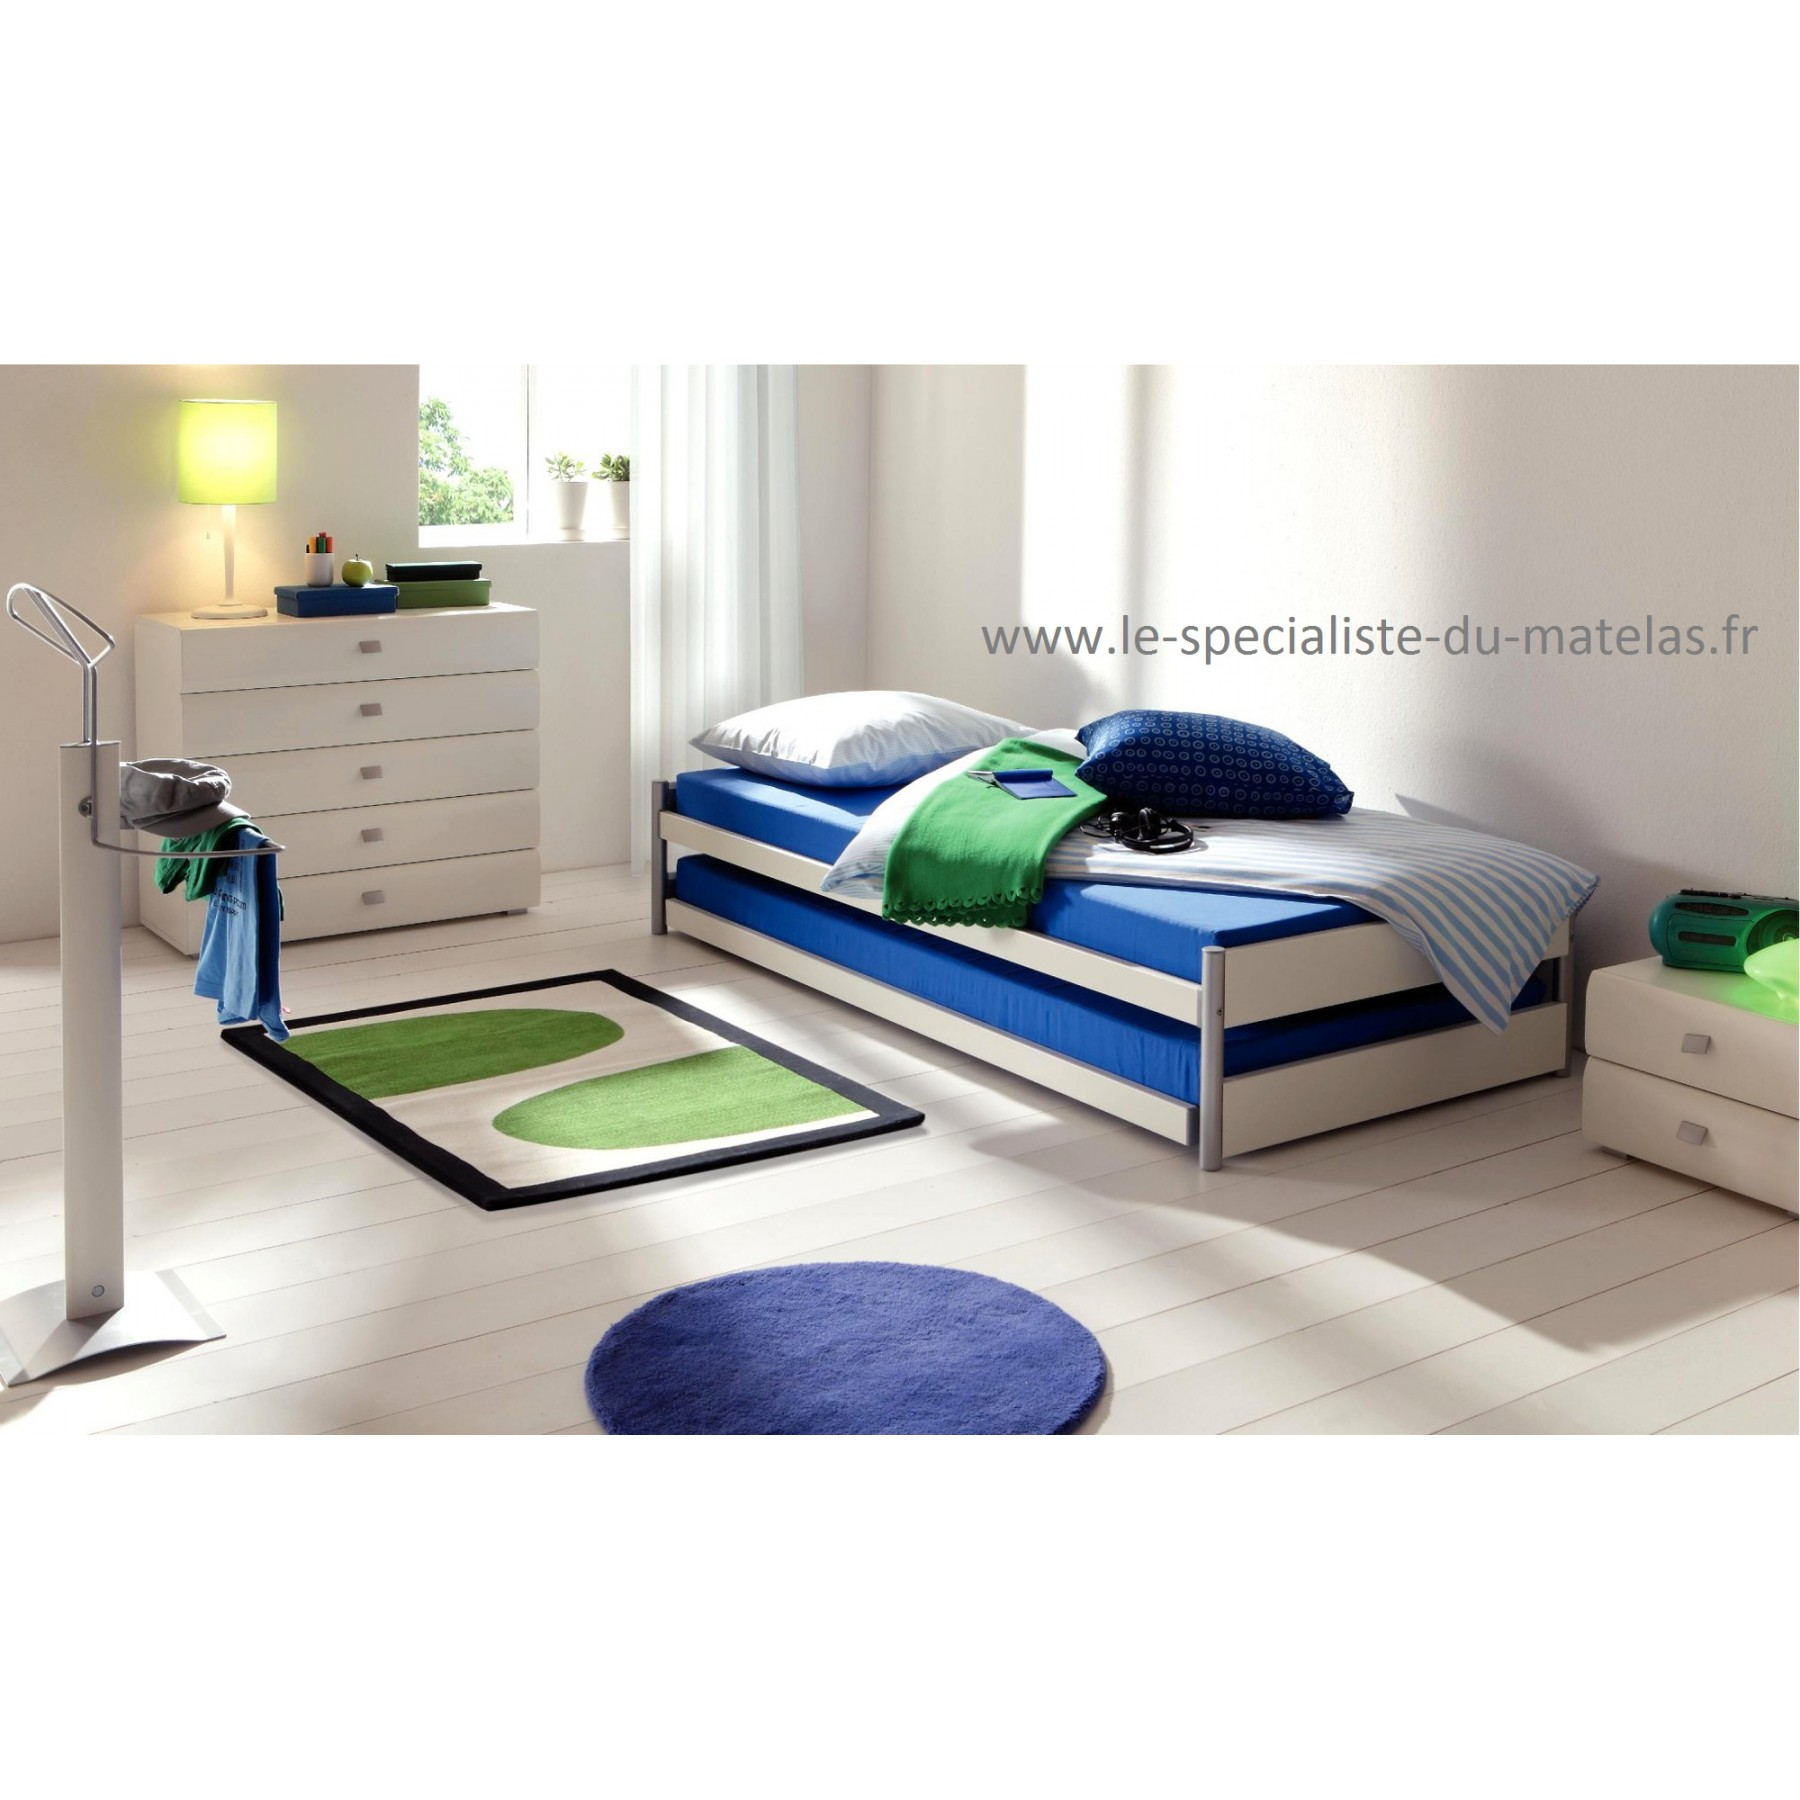 lit gigogne hasena mod le pully d couvrir au le sp cialiste du matelas. Black Bedroom Furniture Sets. Home Design Ideas